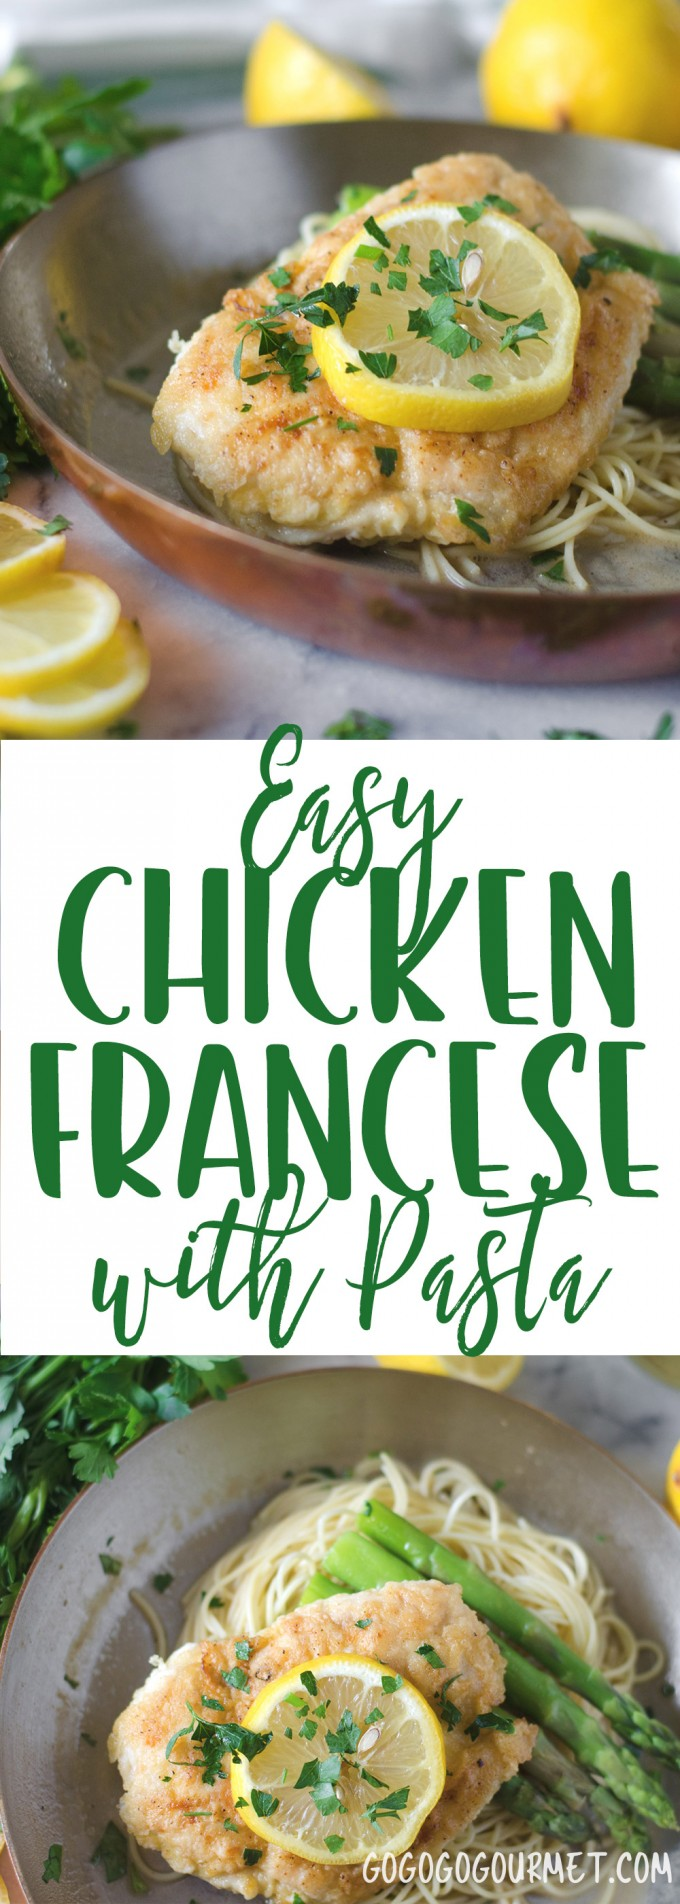 This Chicken Francese Recipe is a fast, 30 minute meal, perfect for those busy weeknights! Only requires a few basic ingredients, and great over pasta! |